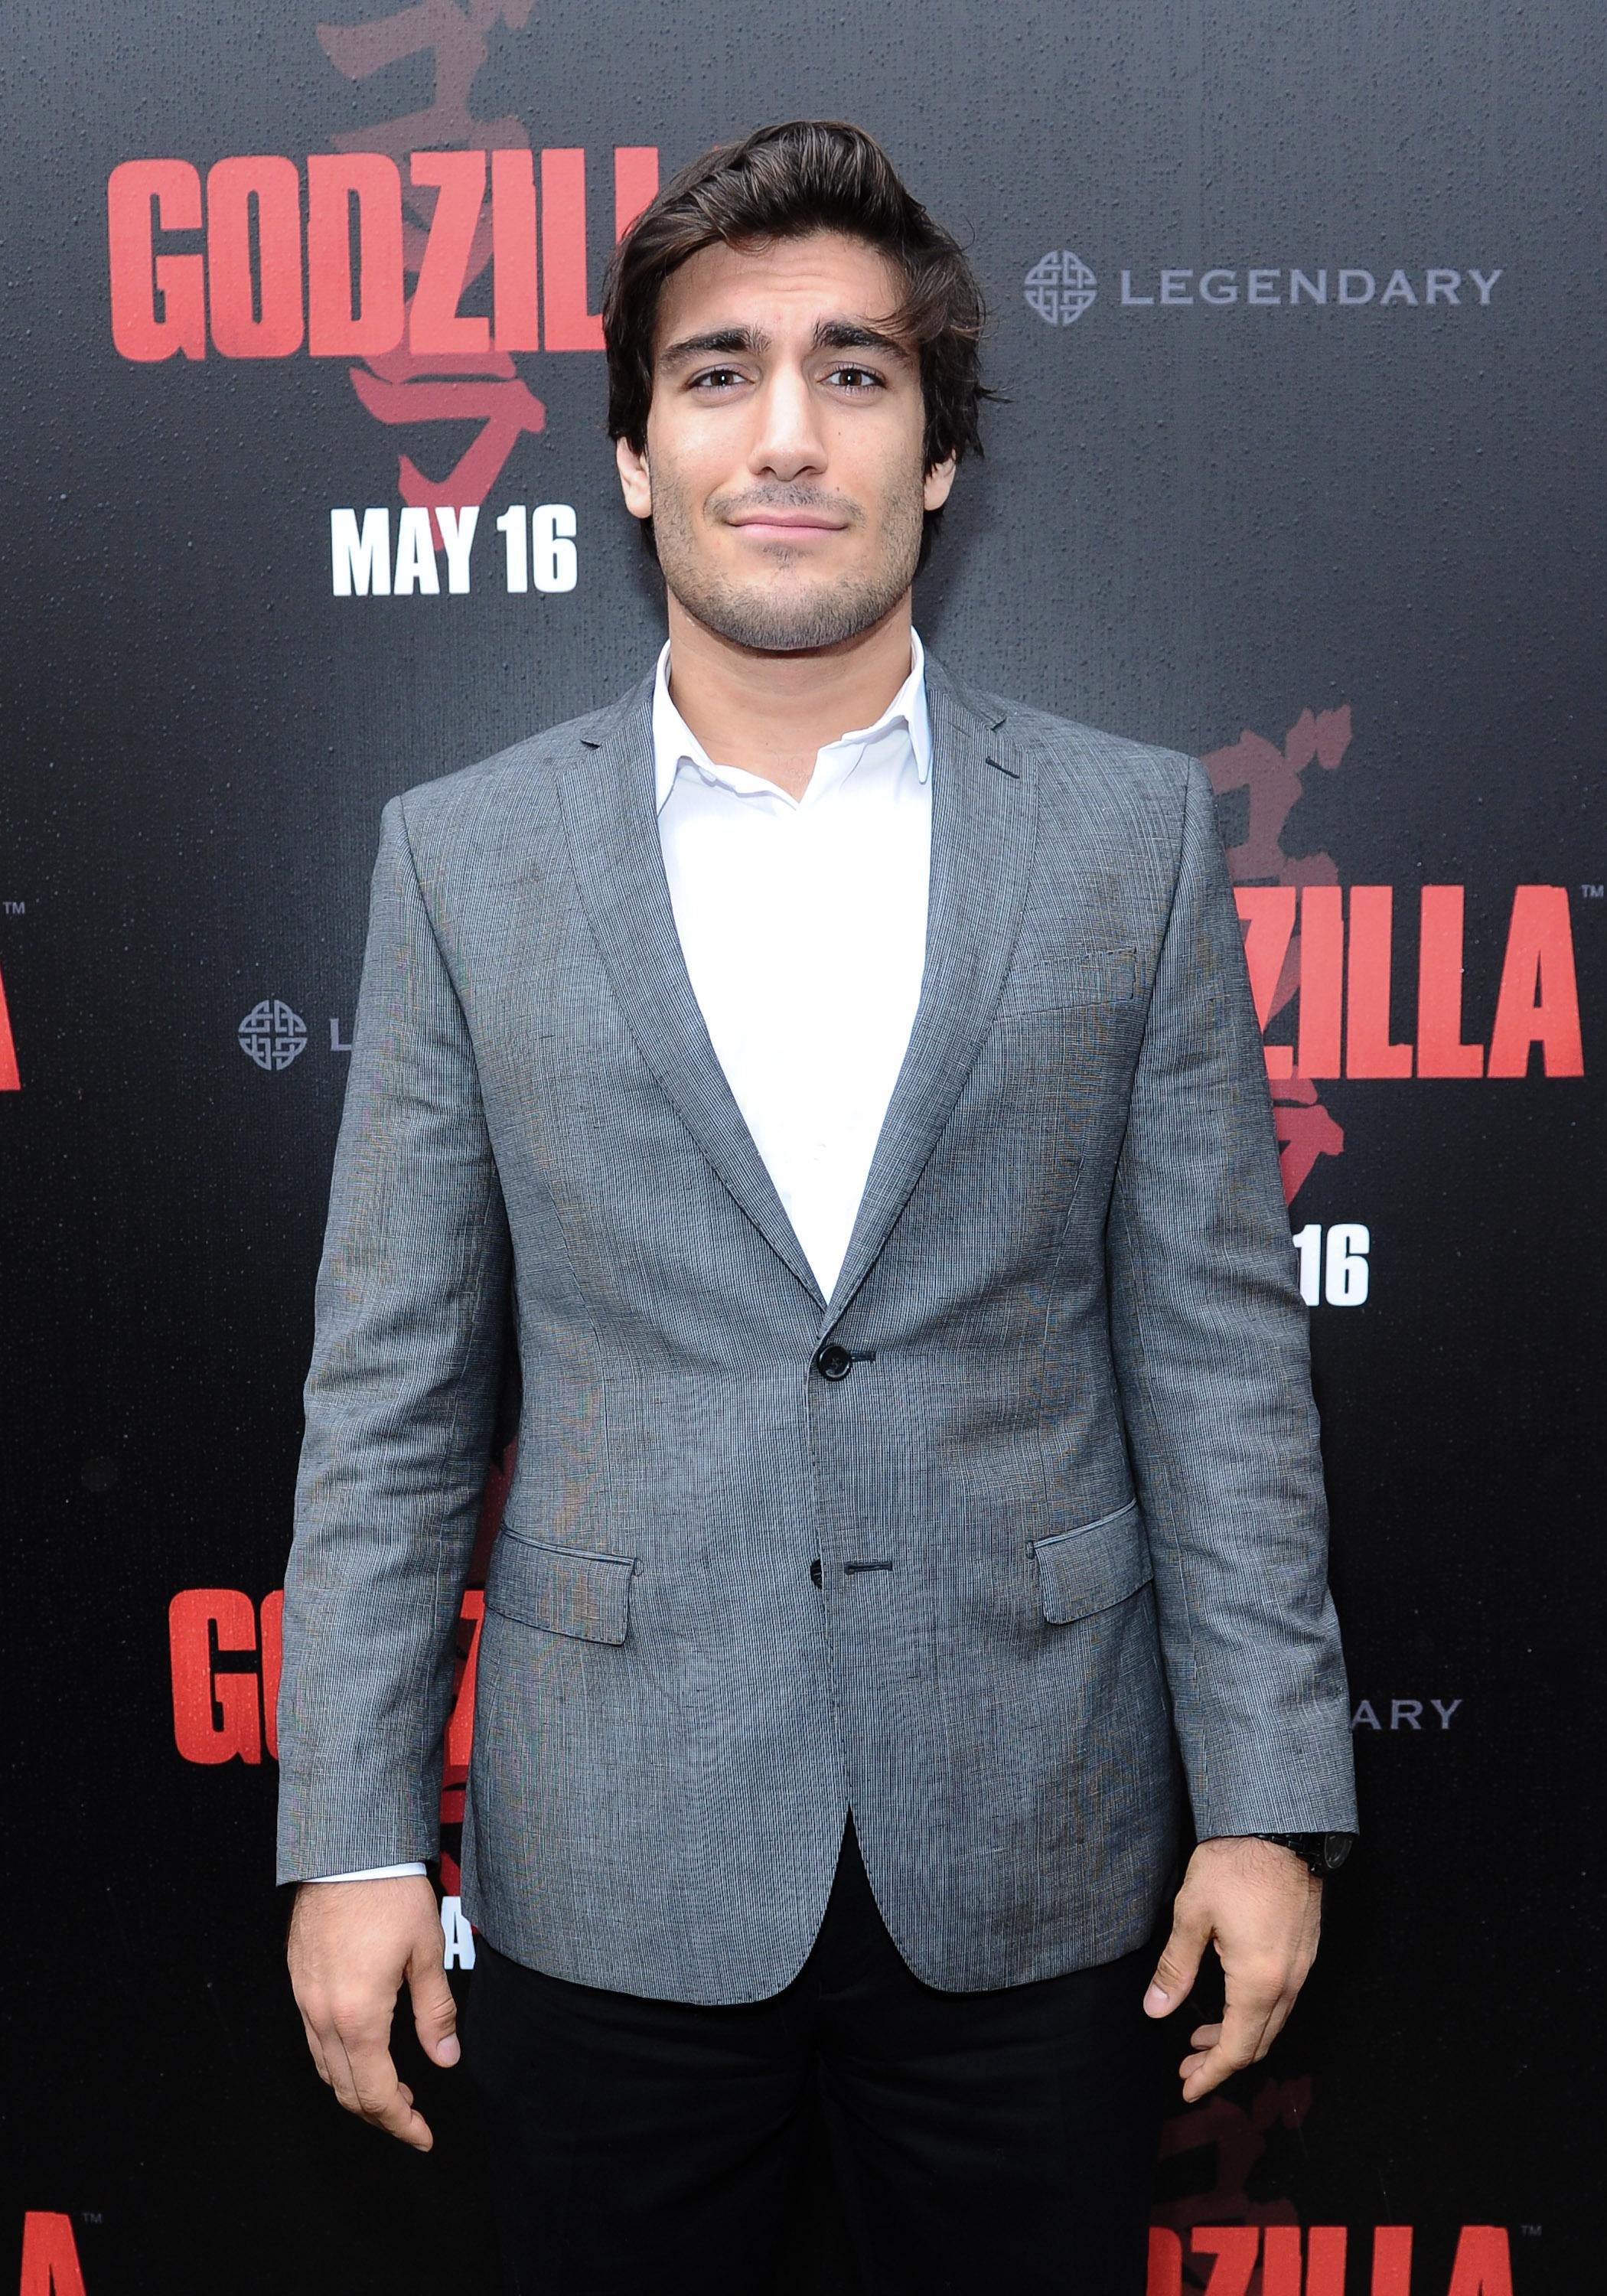 Canadian UFC fighter Elias Theodorou is set to star as the lead in a movie